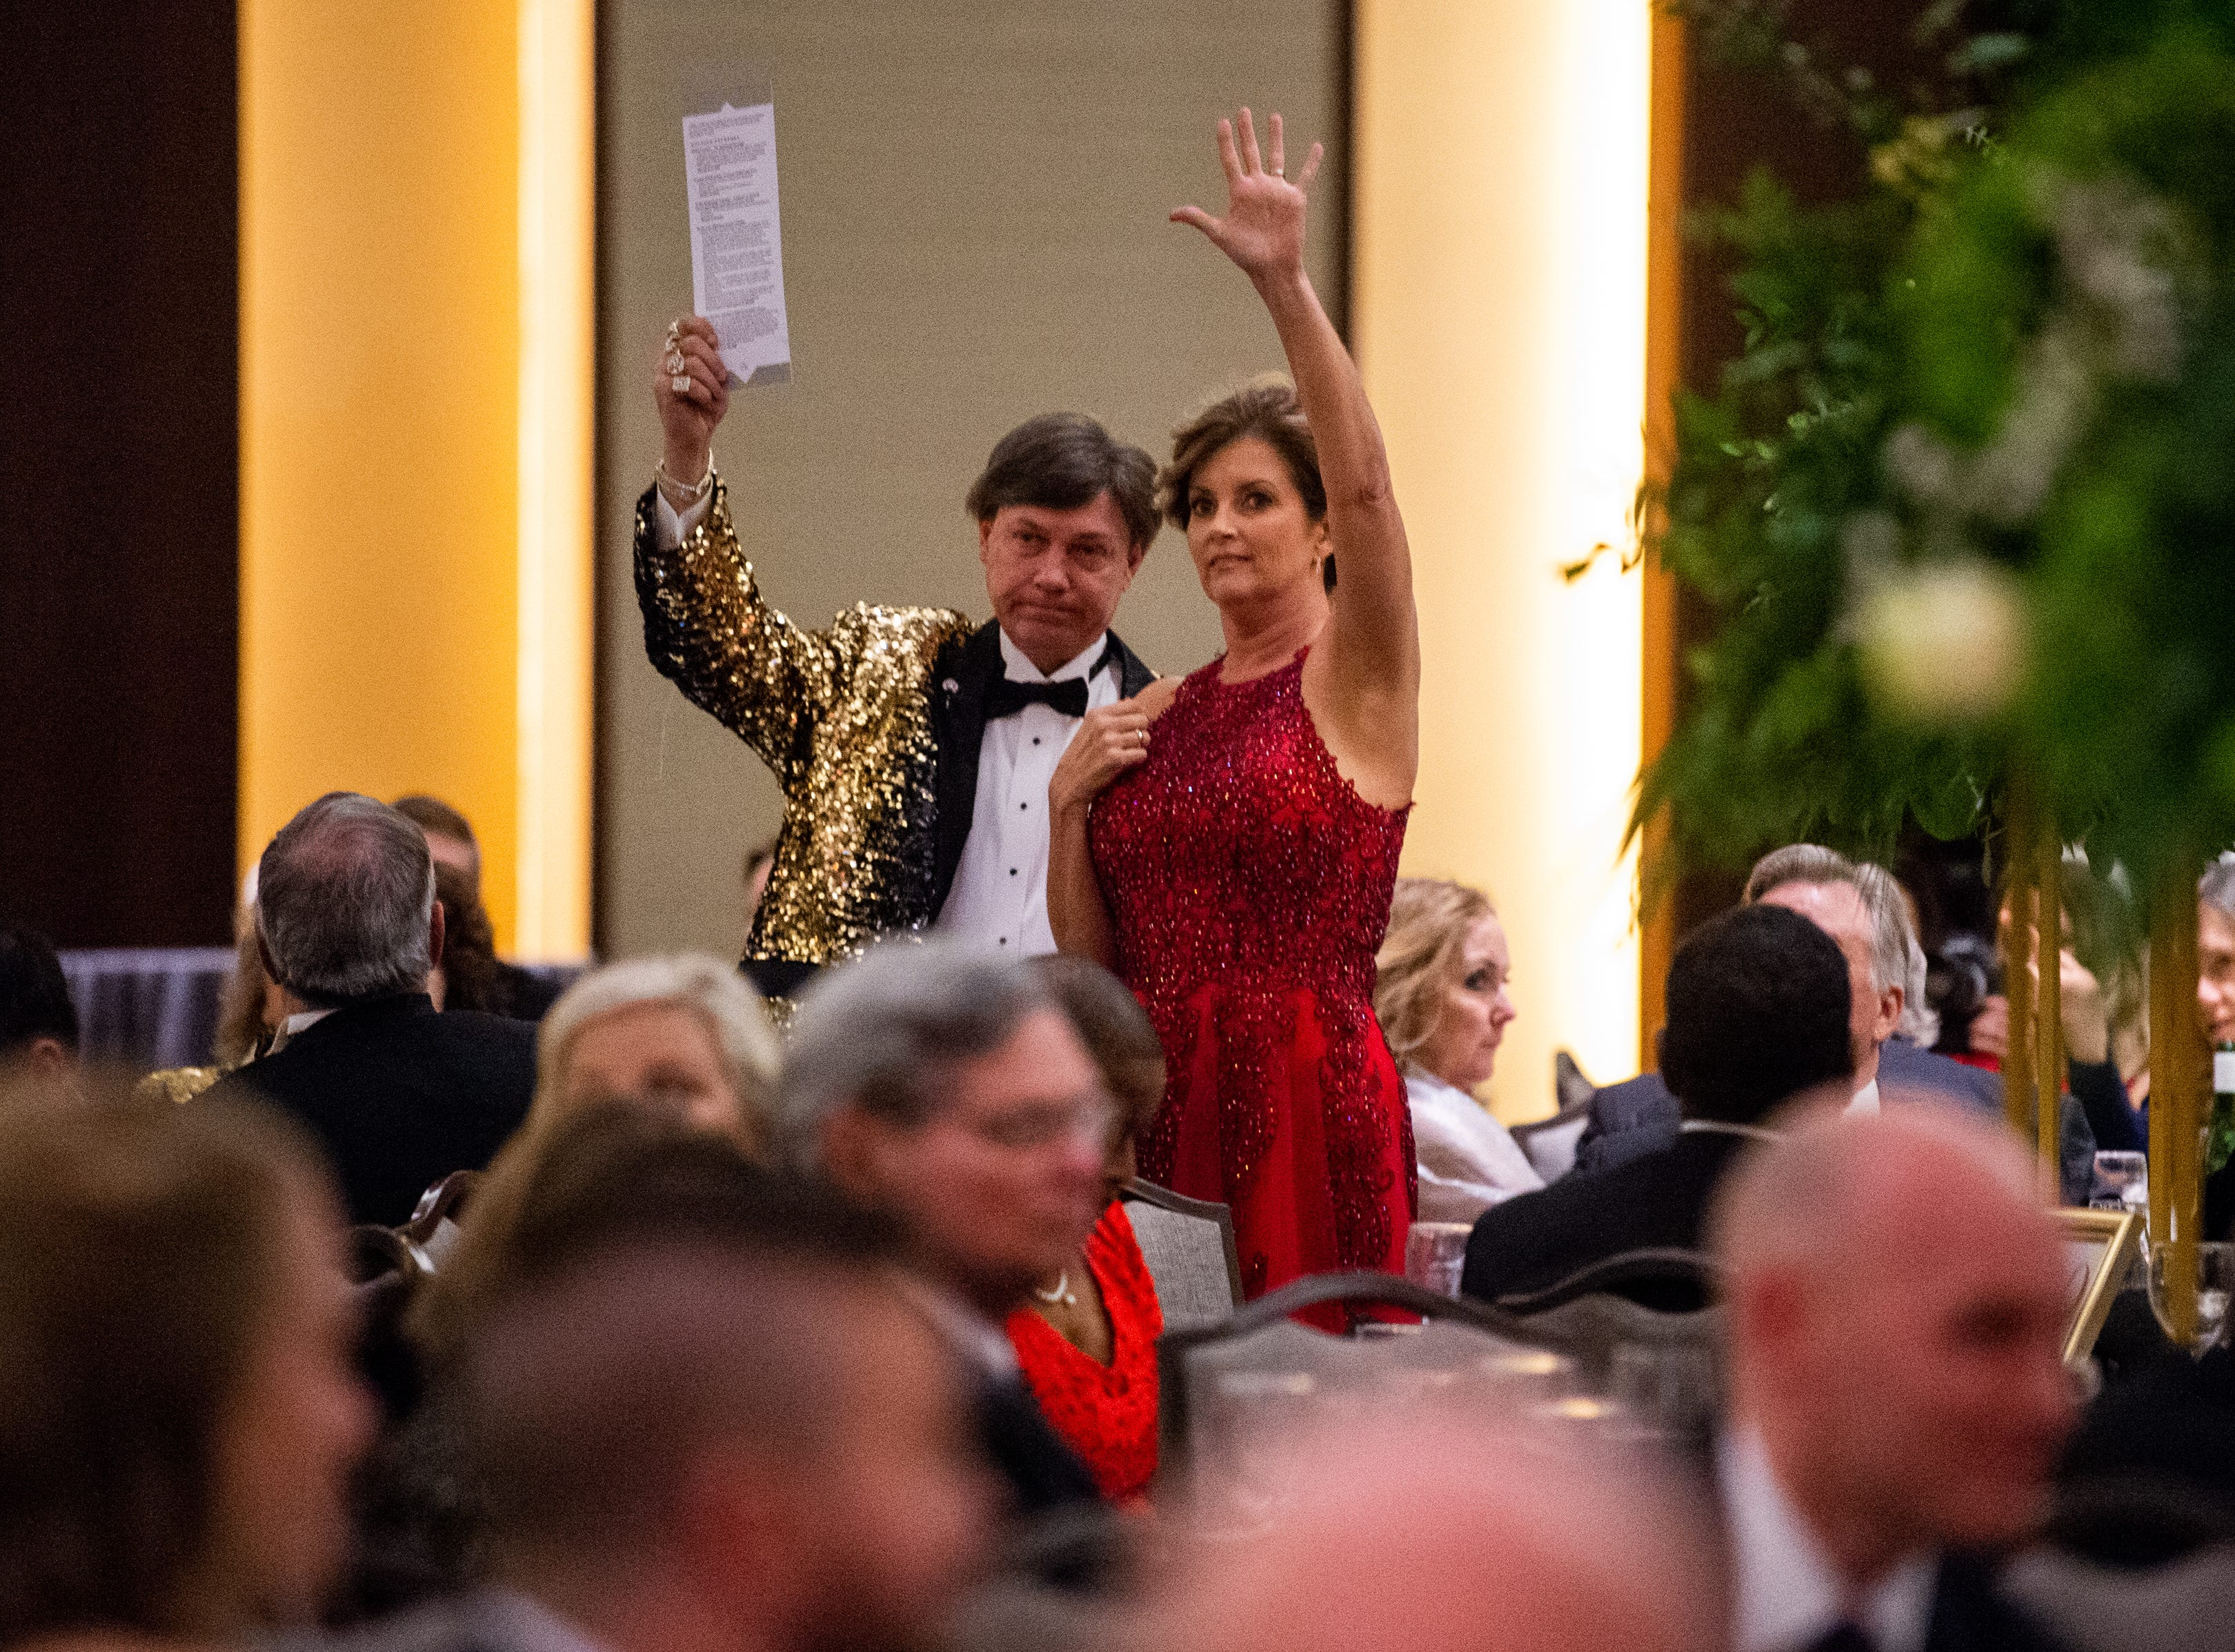 Kevin Kennedy bids over $5,000 on the Music City packageÊduring Austin Peay State University's annual Candlelight Ball at the Omni Nashville Hotel Saturday, March 16, 2019, in Nashville, Tenn.